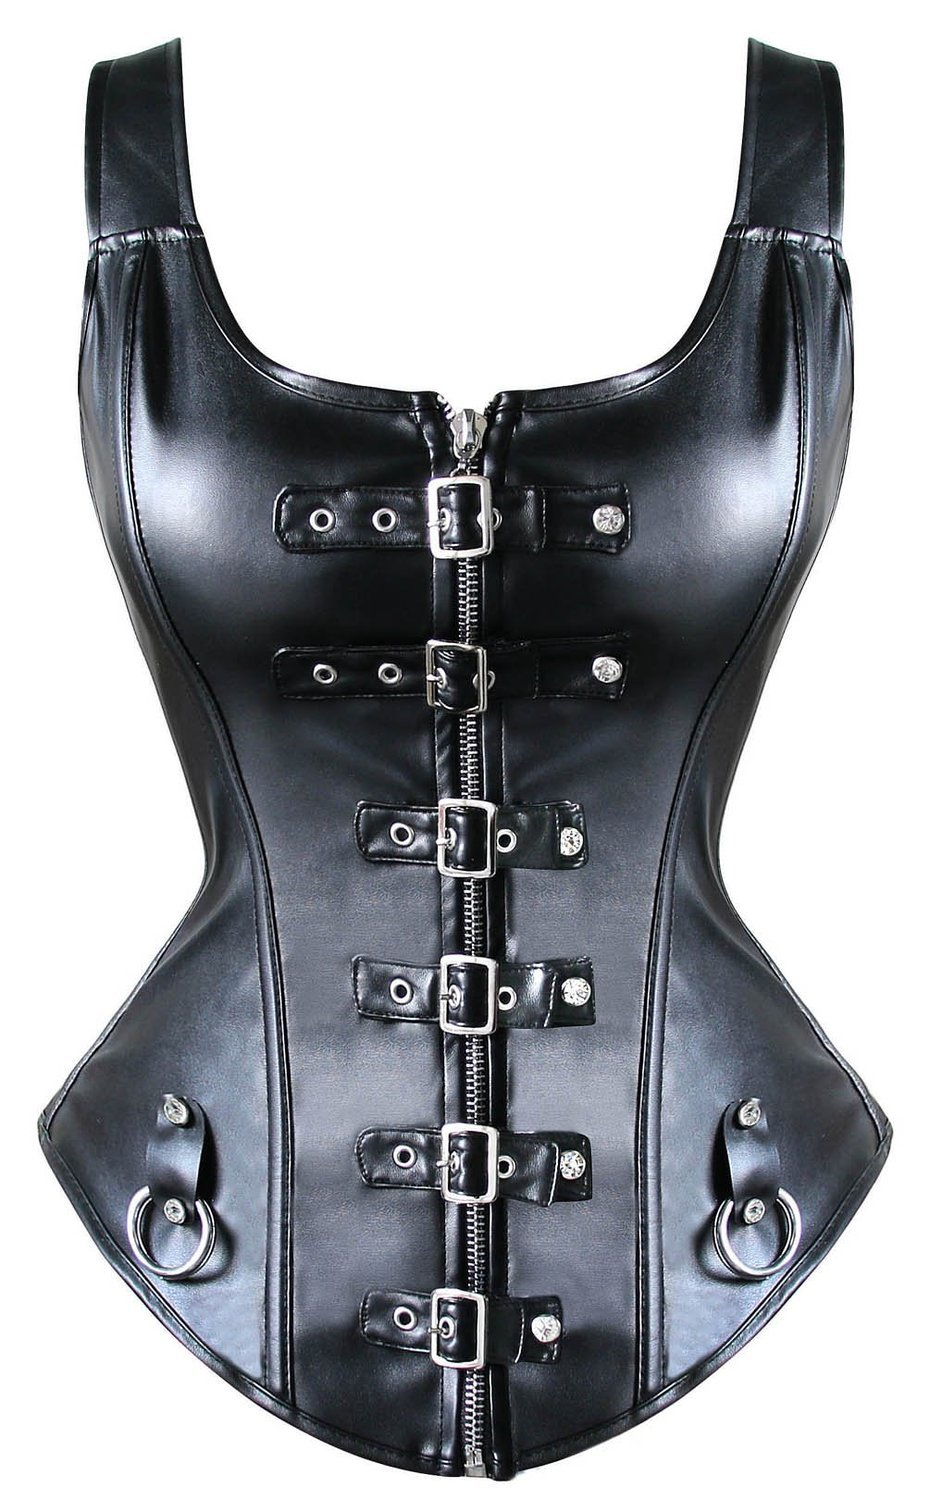 Gothic Leatherette Spiked Mistress Costume high Collar Punk corset body harness